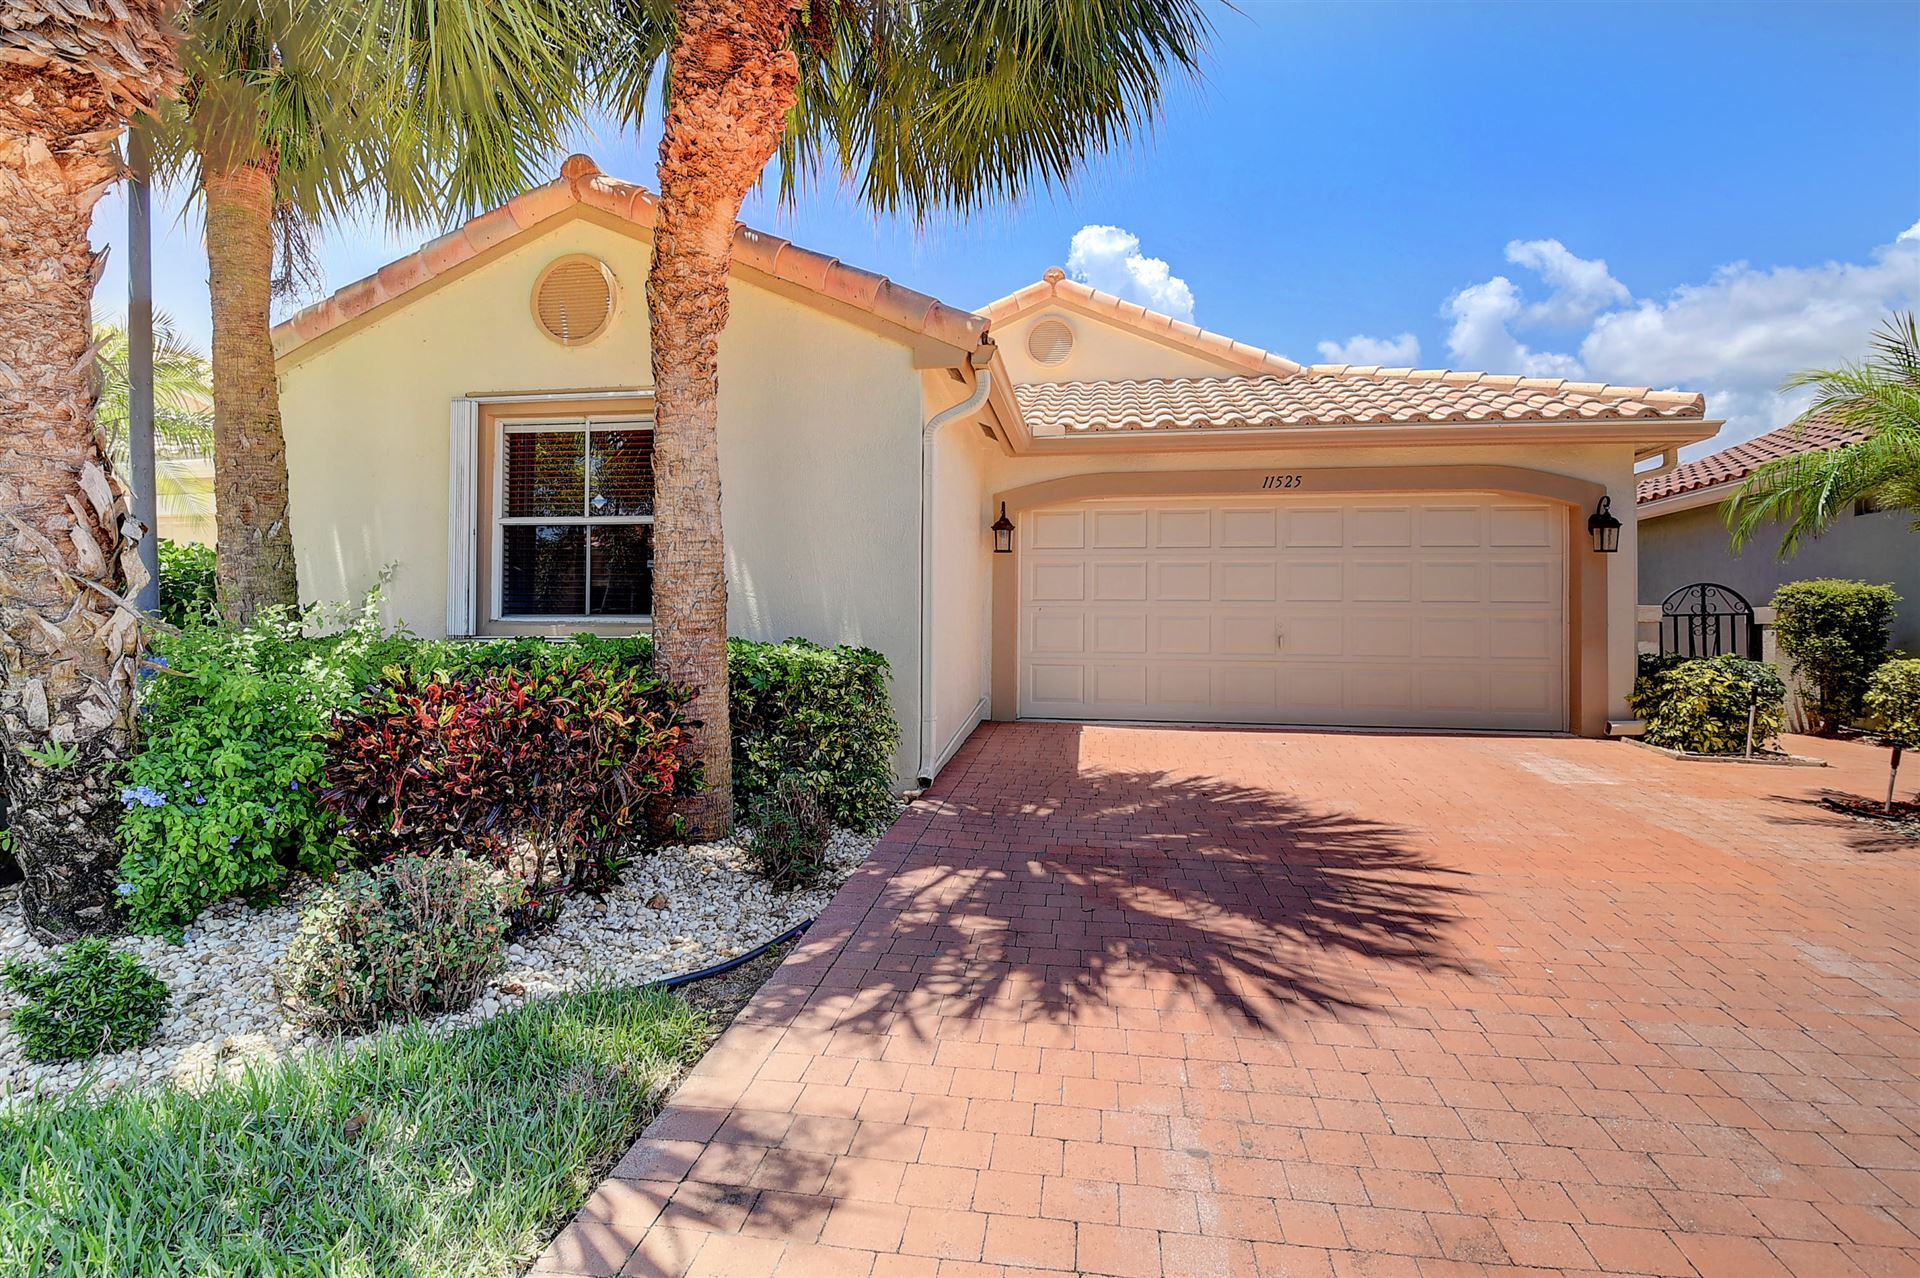 11525 Lawton Road, Boynton Beach, FL 33437 - #: RX-10713770